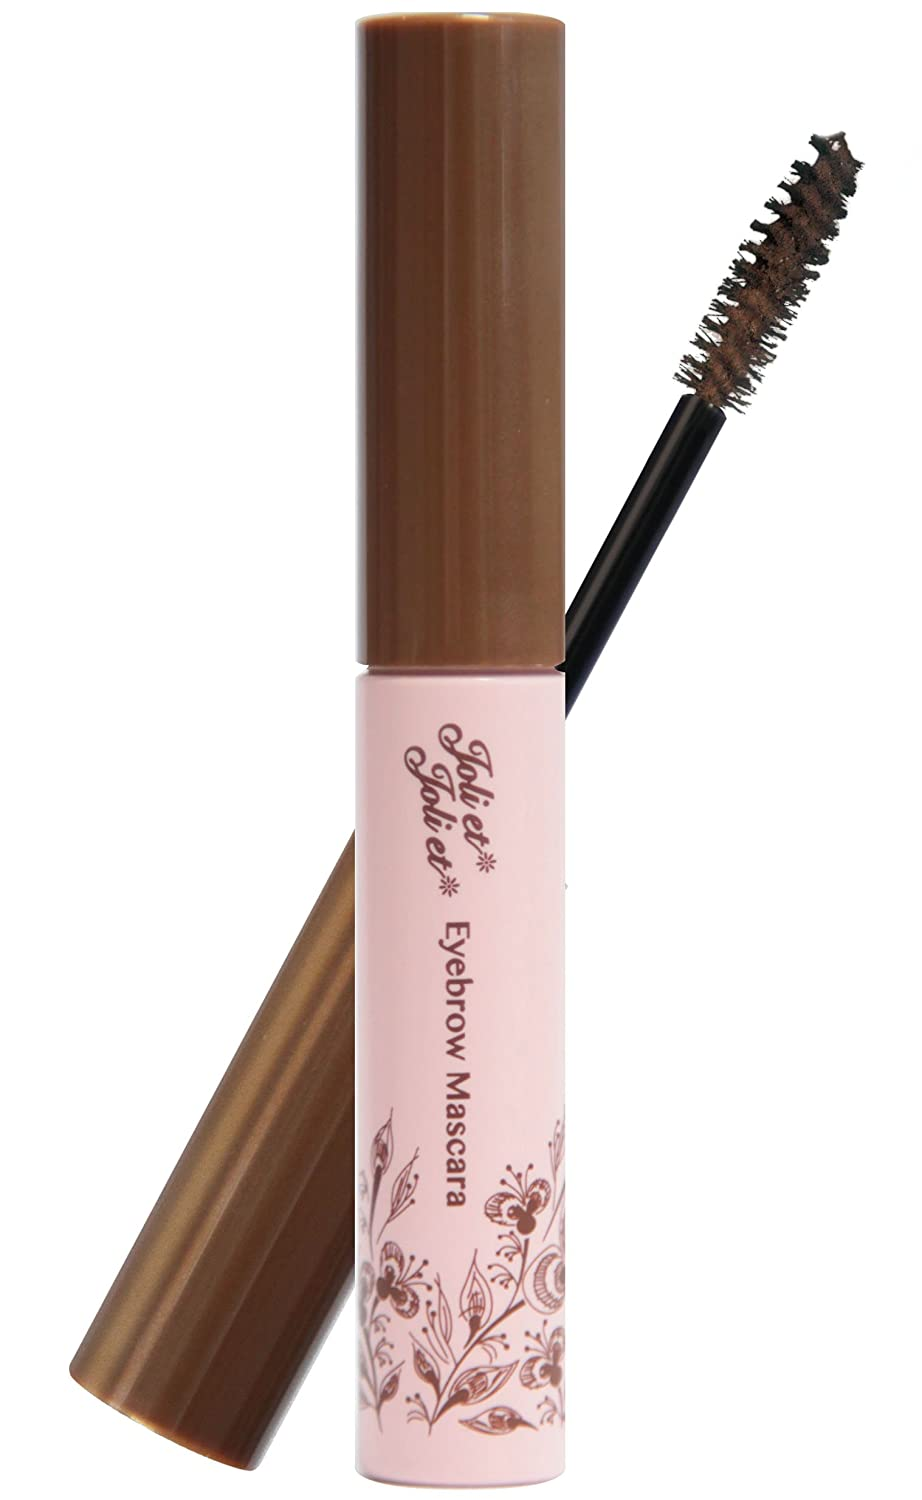 Amazon.com : Avance Joli et Joli et Eyebrow Mascara #Natural Brown, 1pc : Beauty